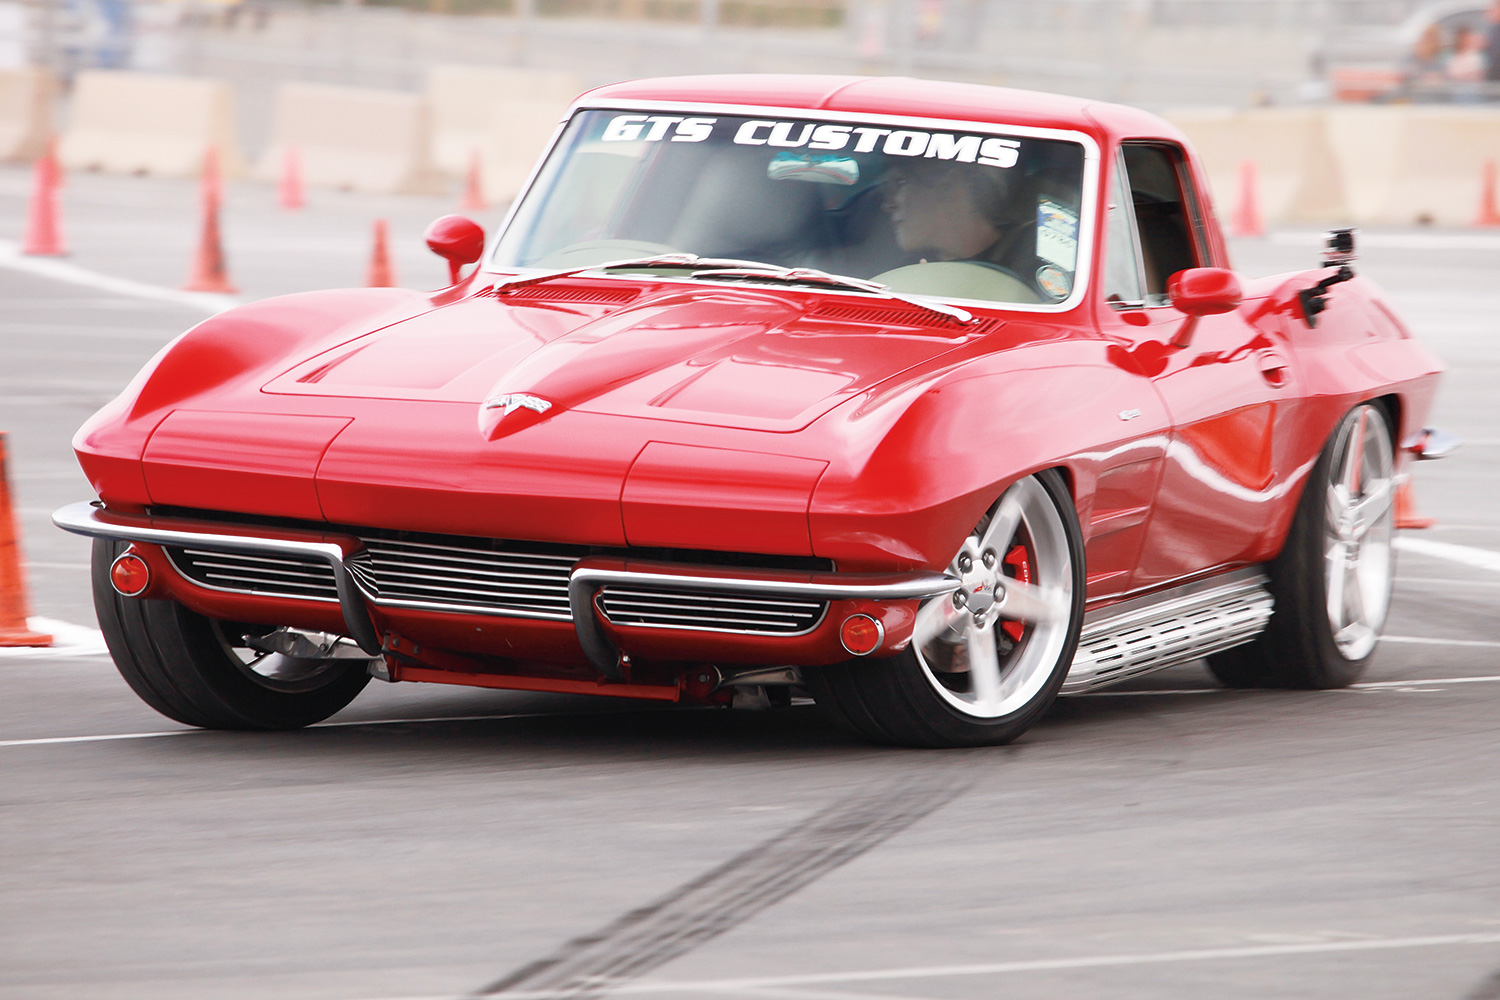 We spent some time hanging out with Greg and Jane Thurmond, who own this highly updated '64 Corvette. They are serious autocrossers and muscle car fans—and the C4 suspension, LS6, and T56 transmission in their beautiful midyear proves it. Piloted by Greg, it took the overall win in Street Machine with a 54.086-second lap.